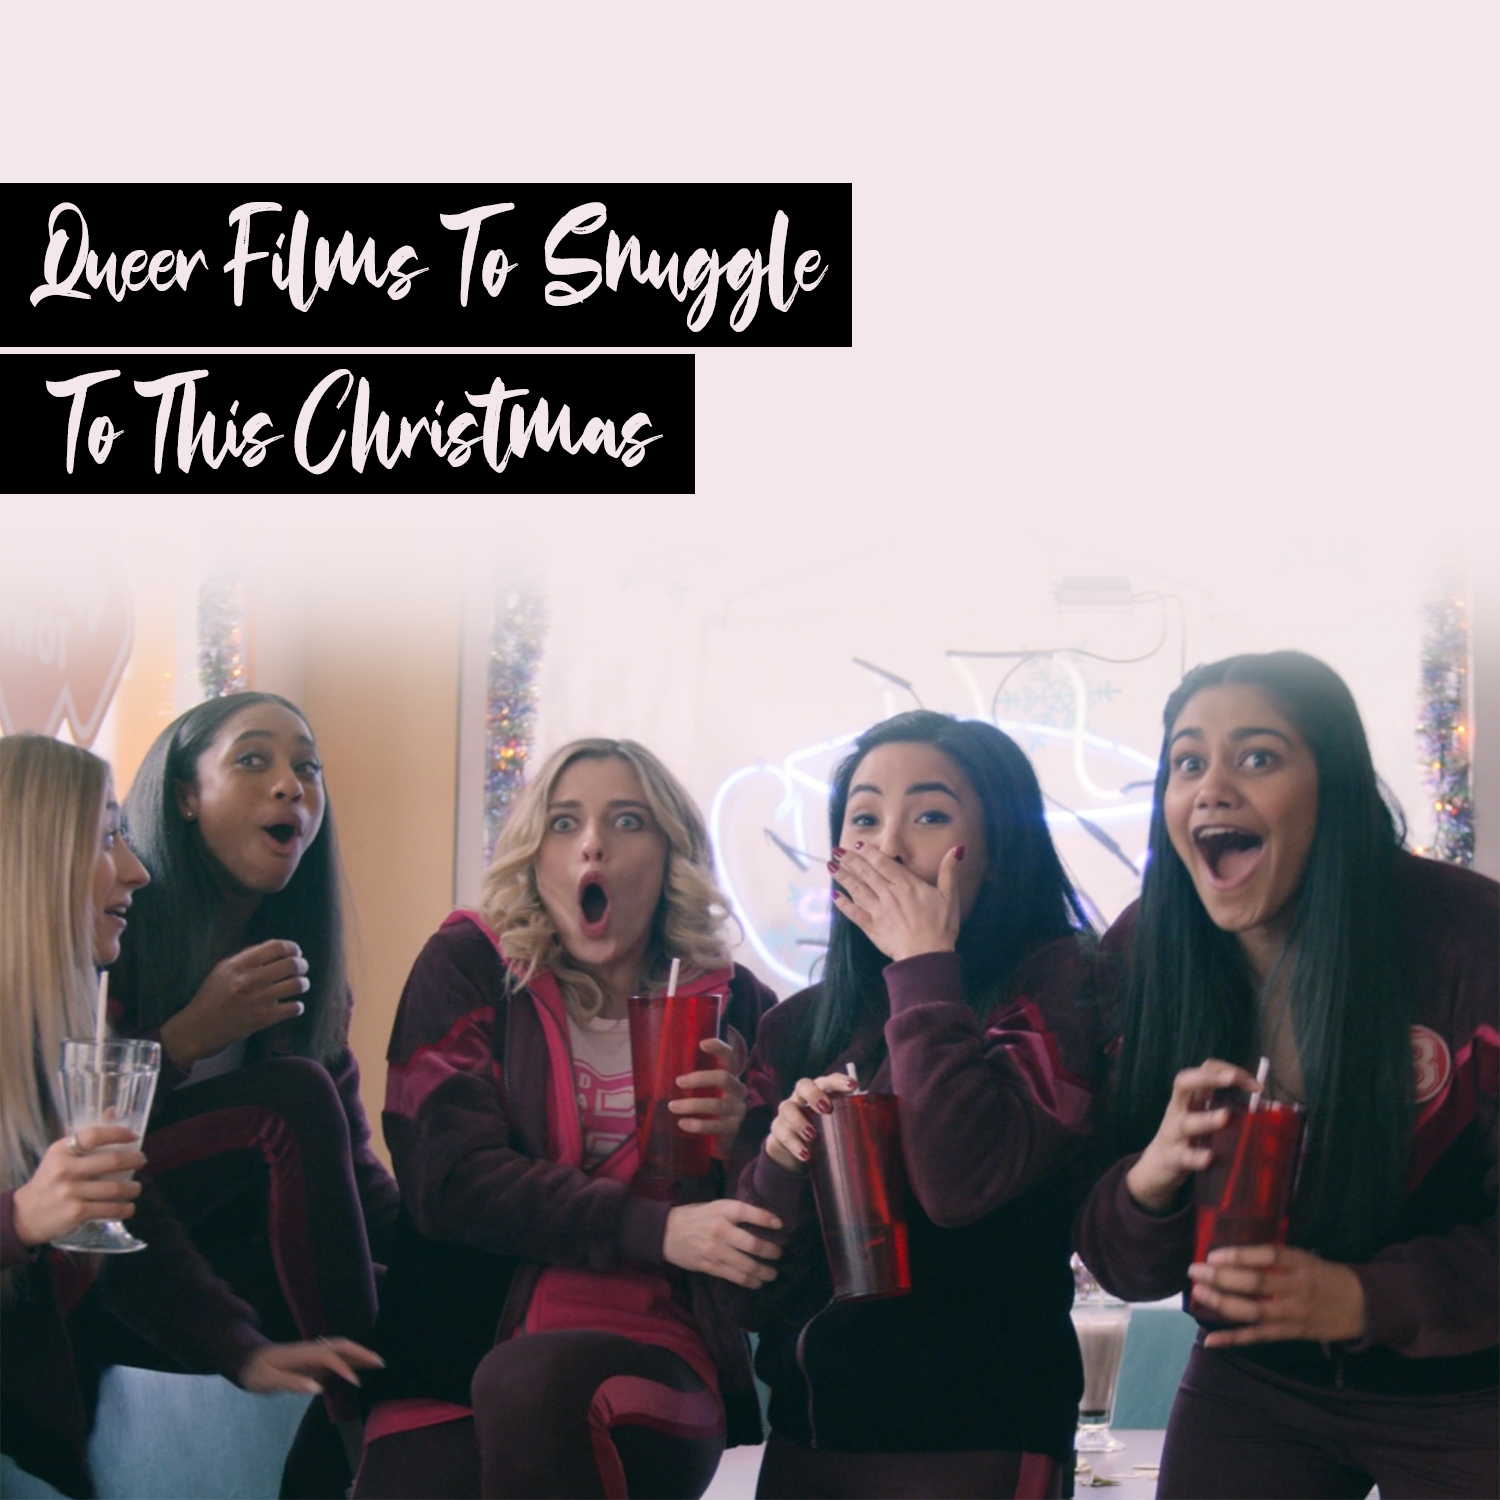 Queer Films To Snuggle To This Christmas